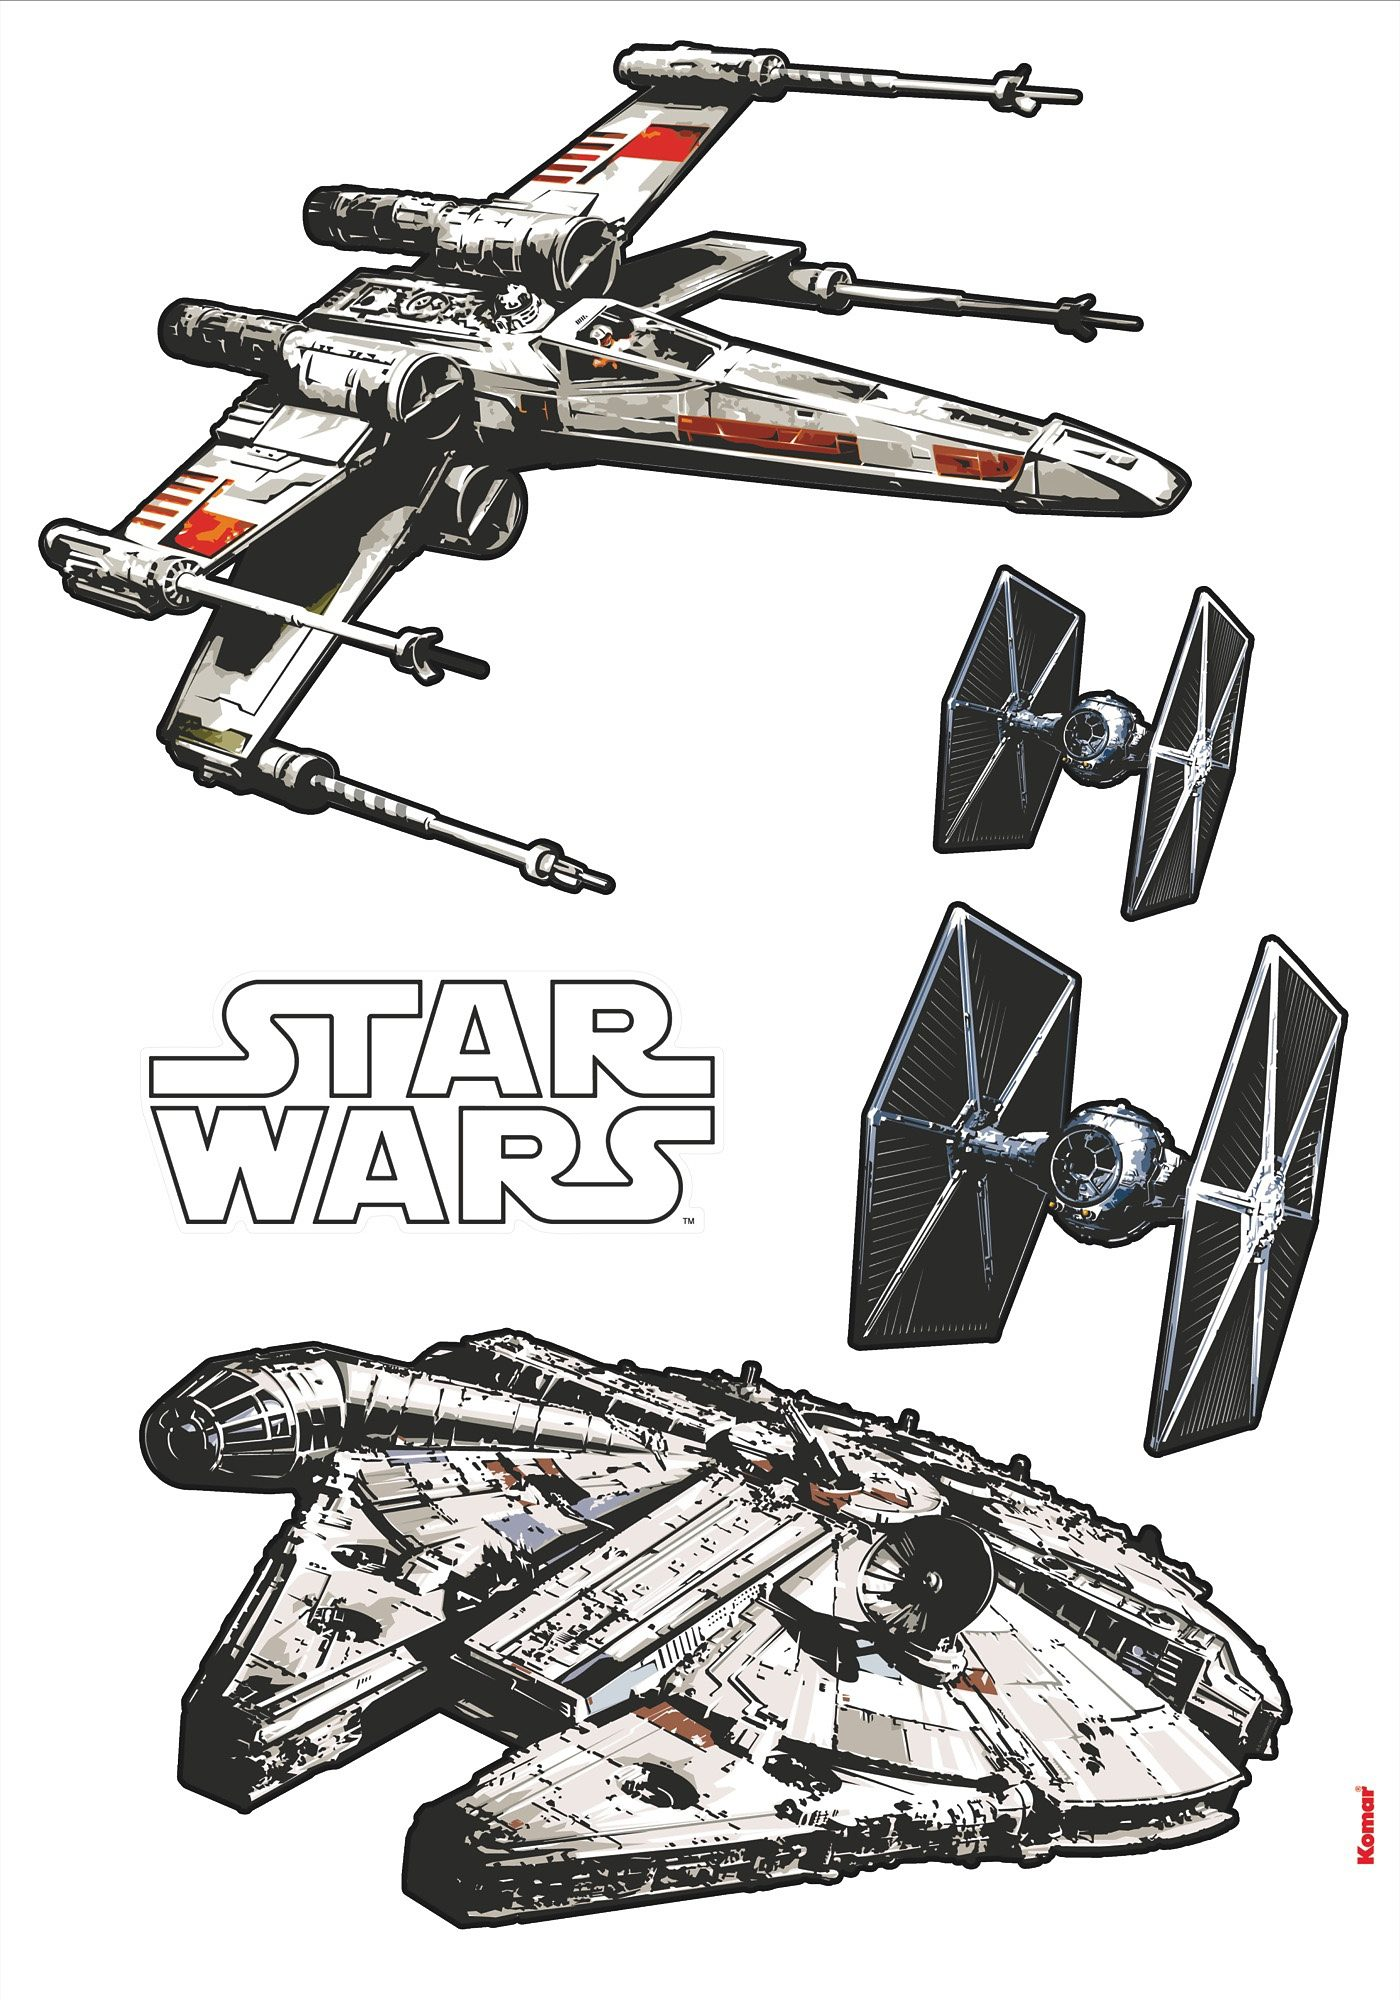 Wandsticker, Komar, »Star Wars Spaceships«, 70/100 cm